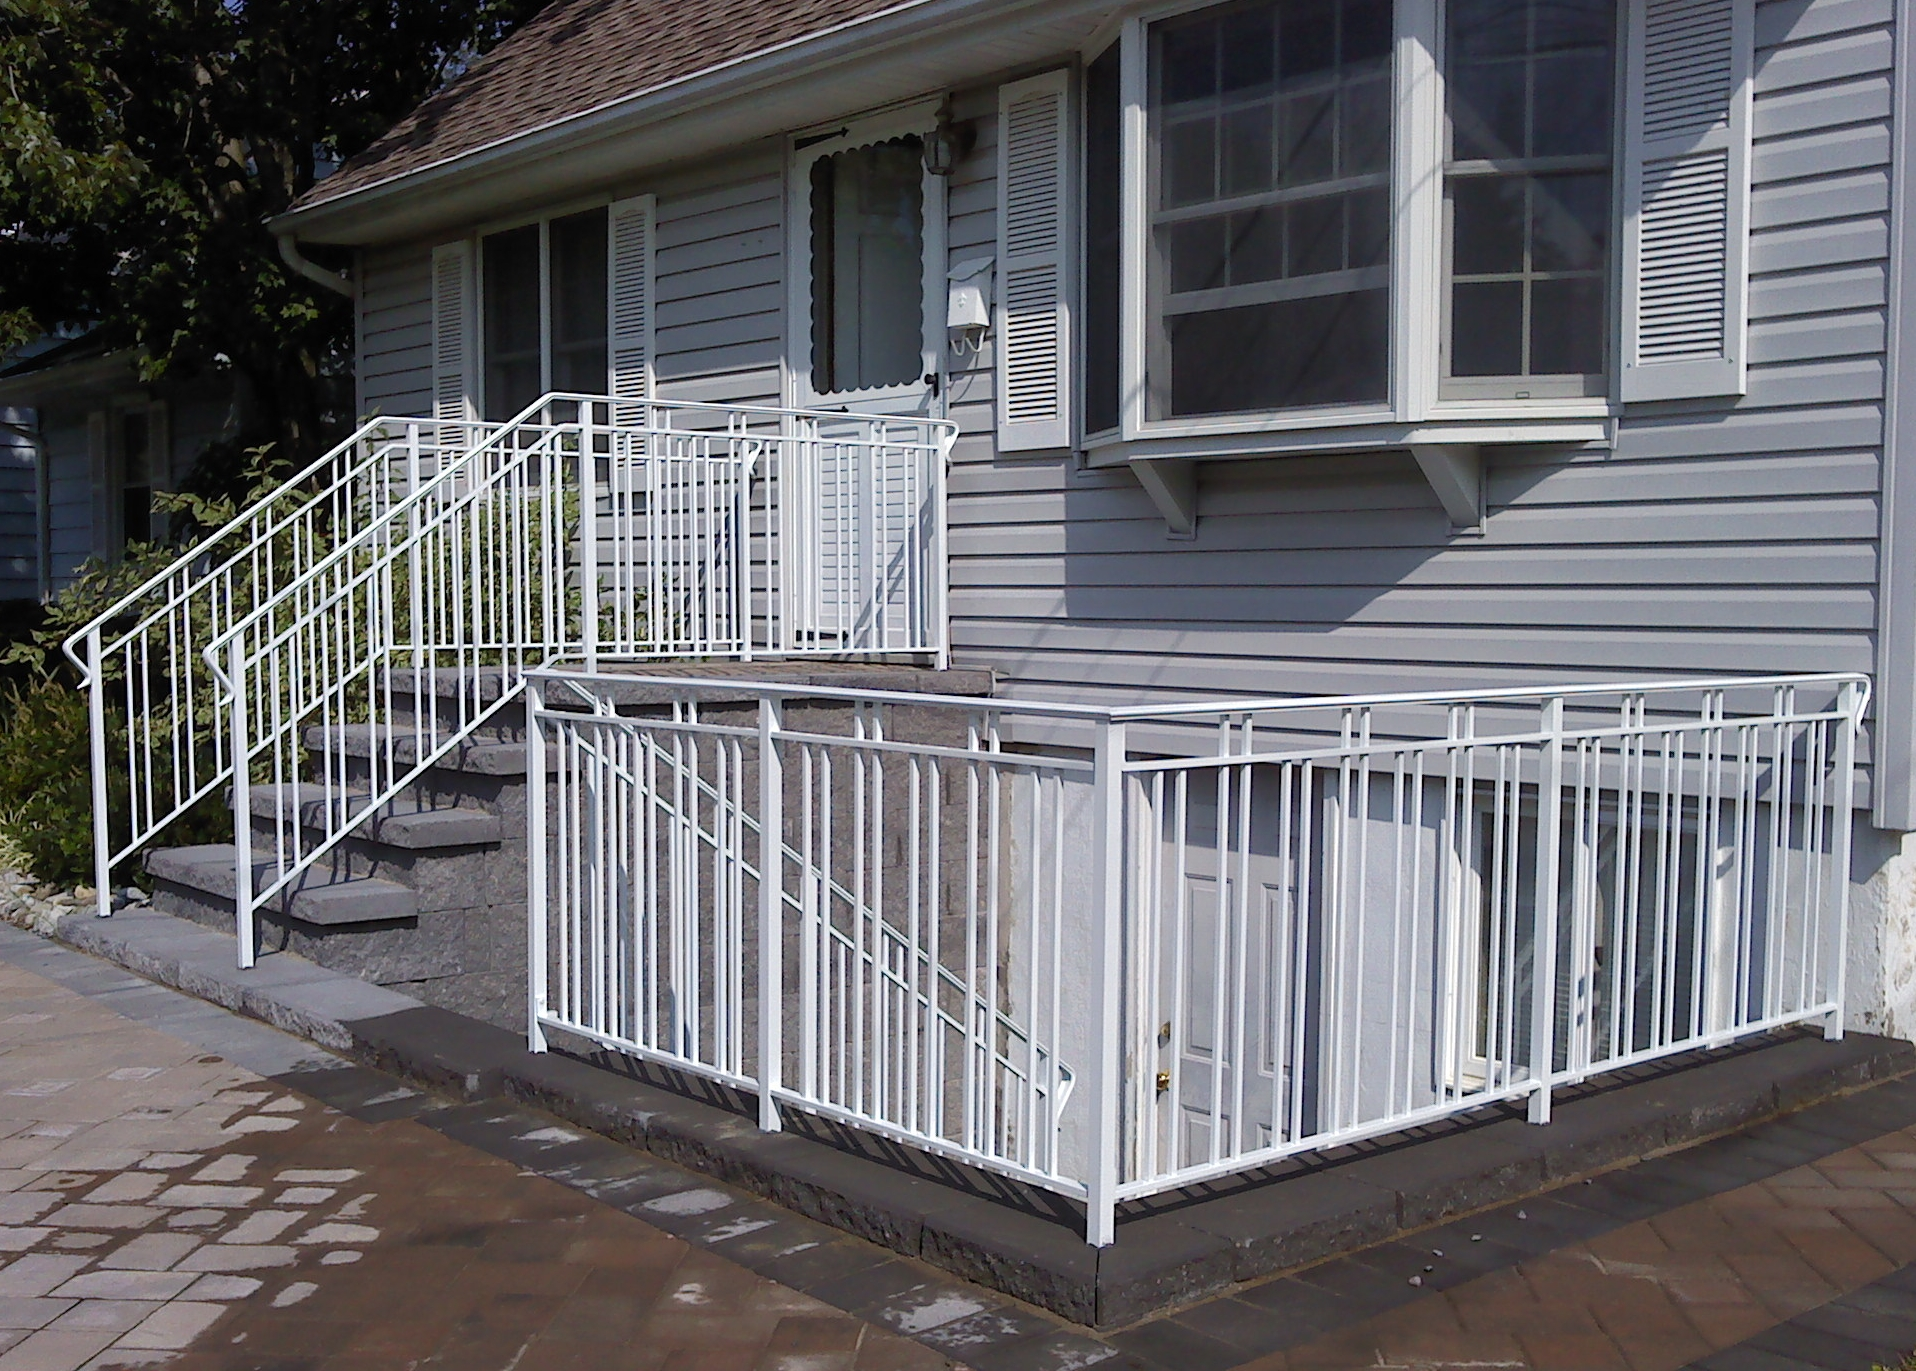 93 stair railings nj